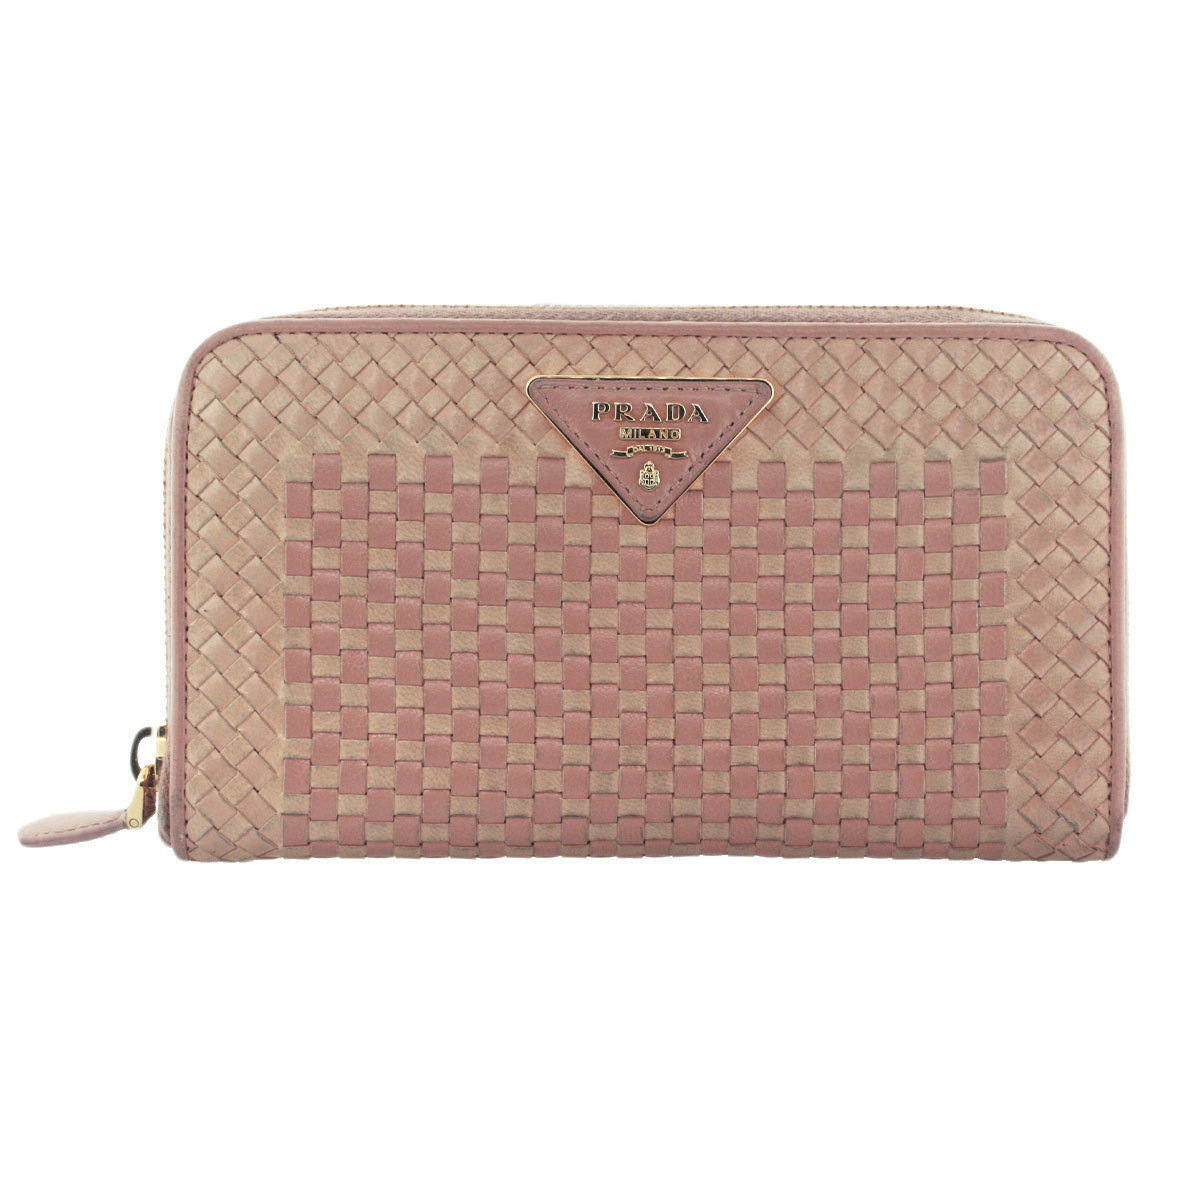 63f636ce531178 ... best authentic prada pink weave saffiano leather large zip continental  wallet lim. e dadae a20a8